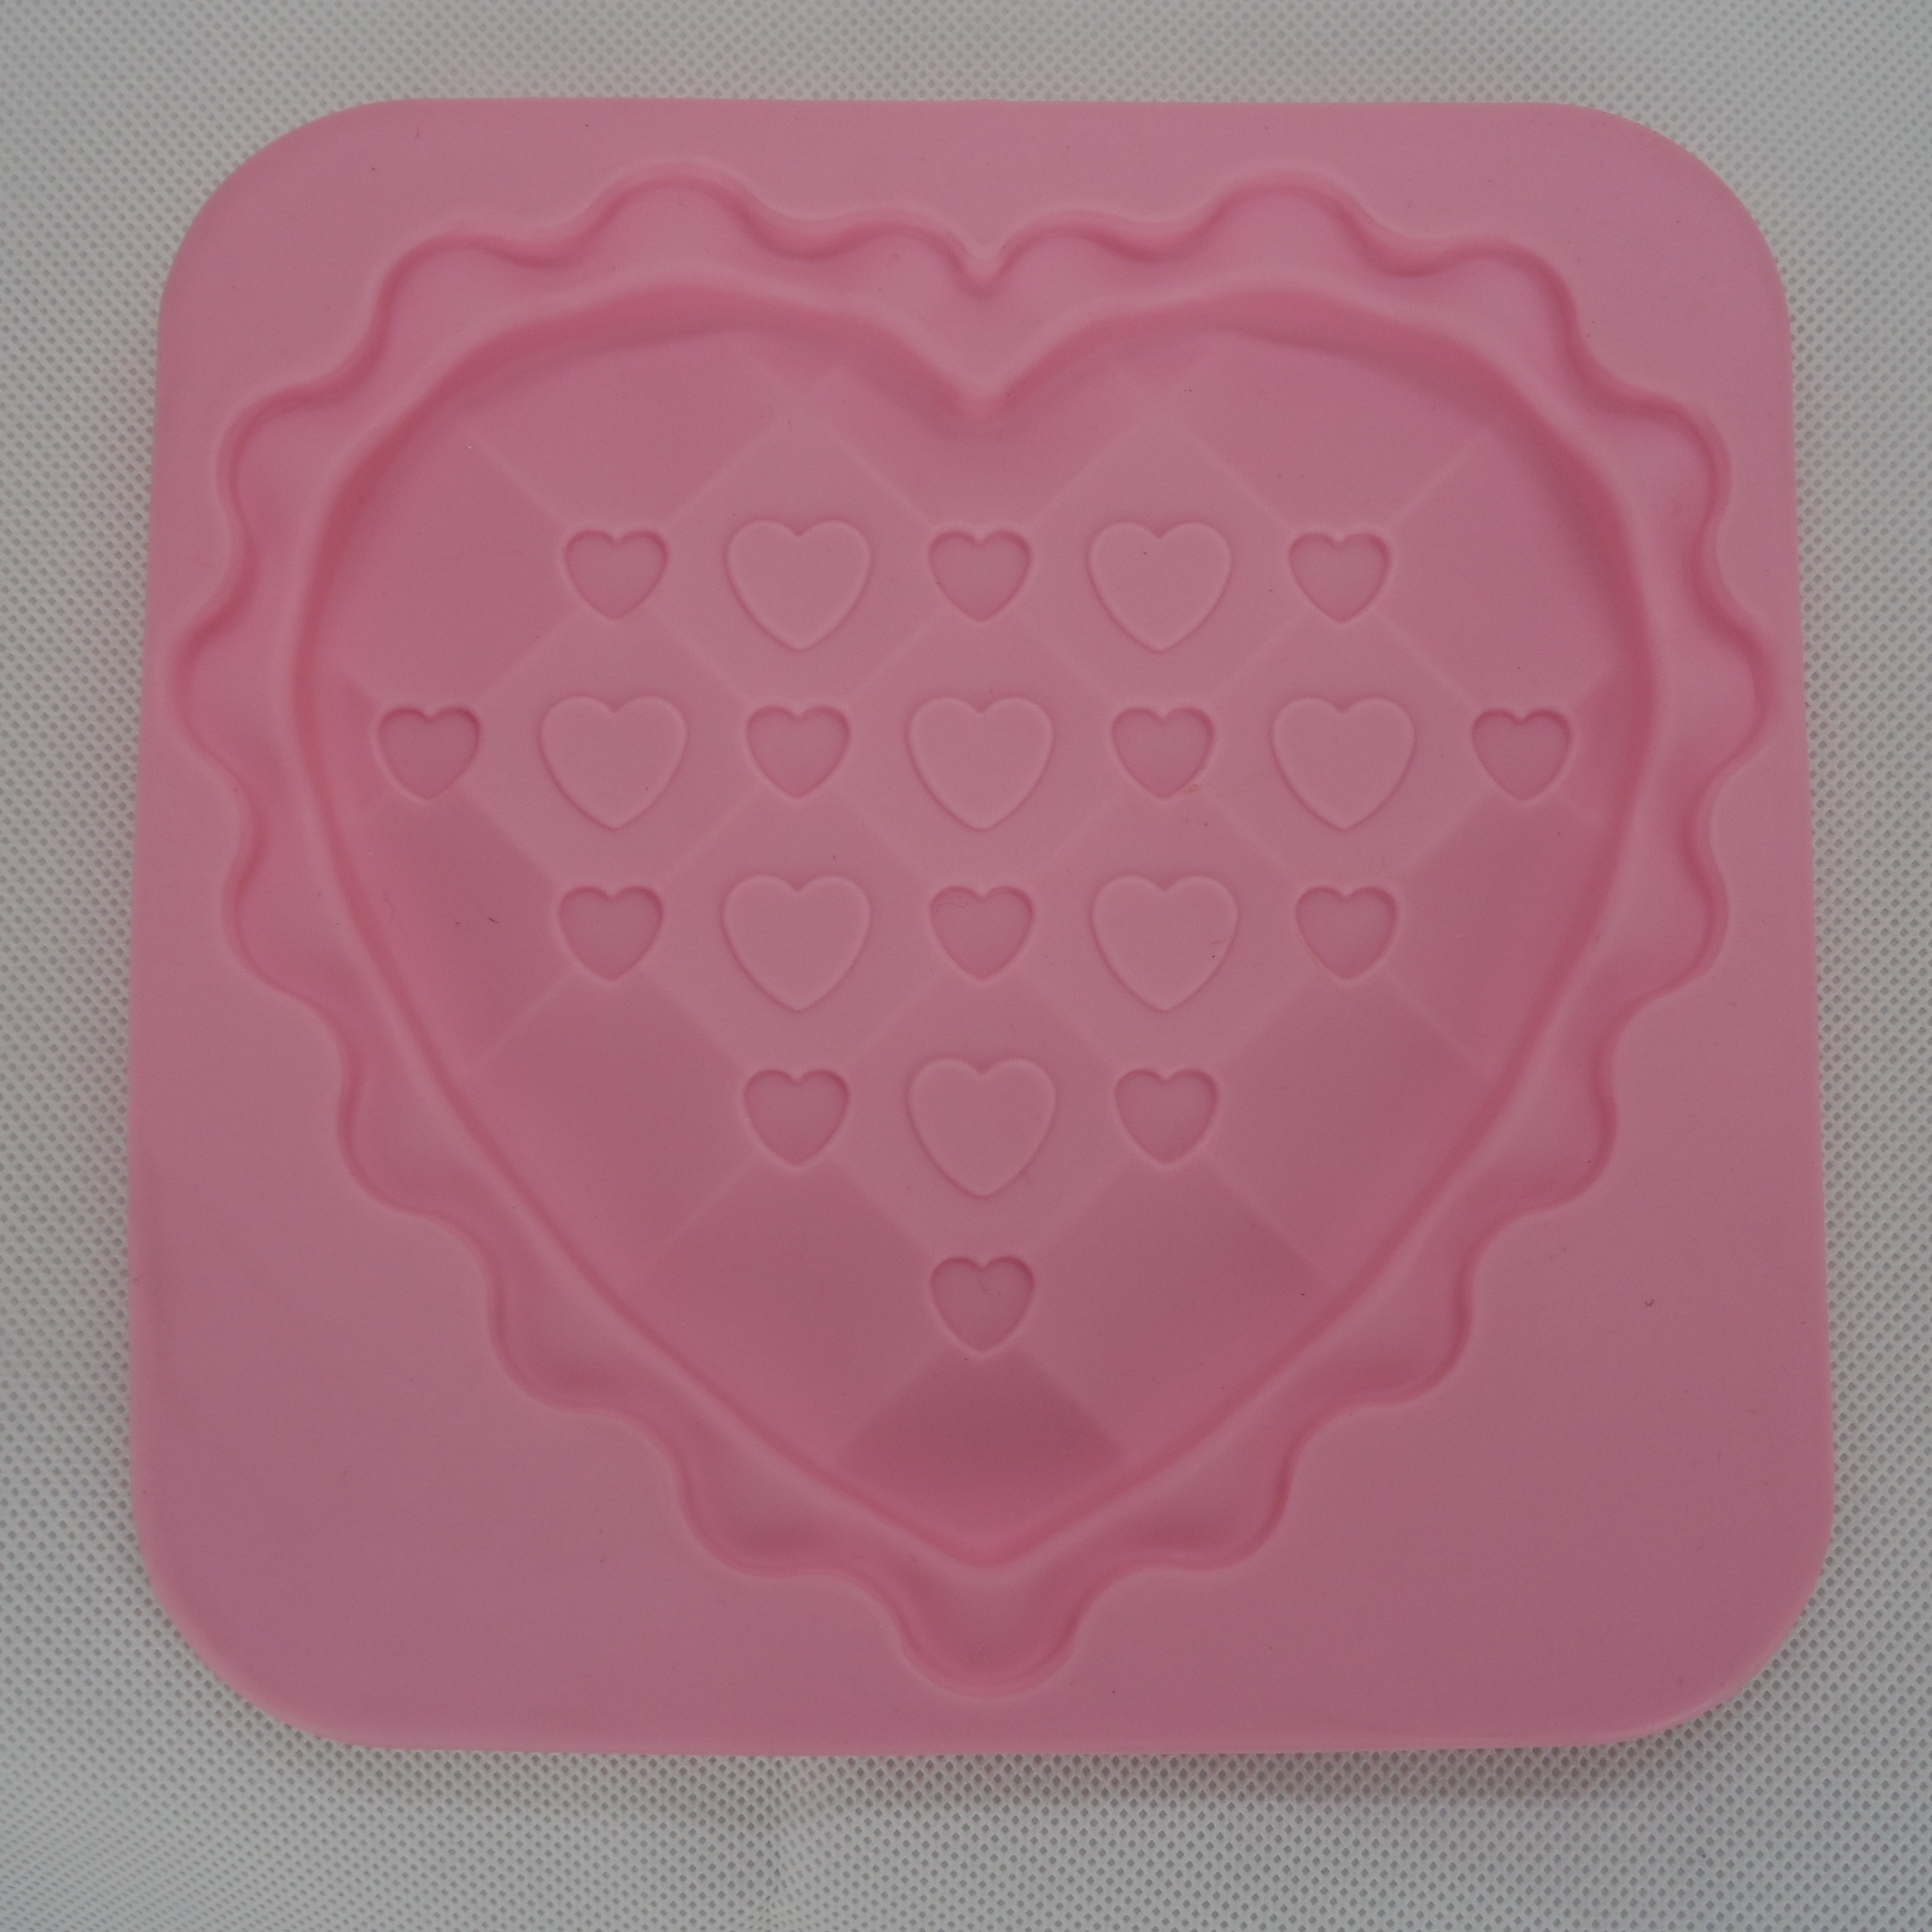 CXCH-030	Silicone chocoalte mould -Heart